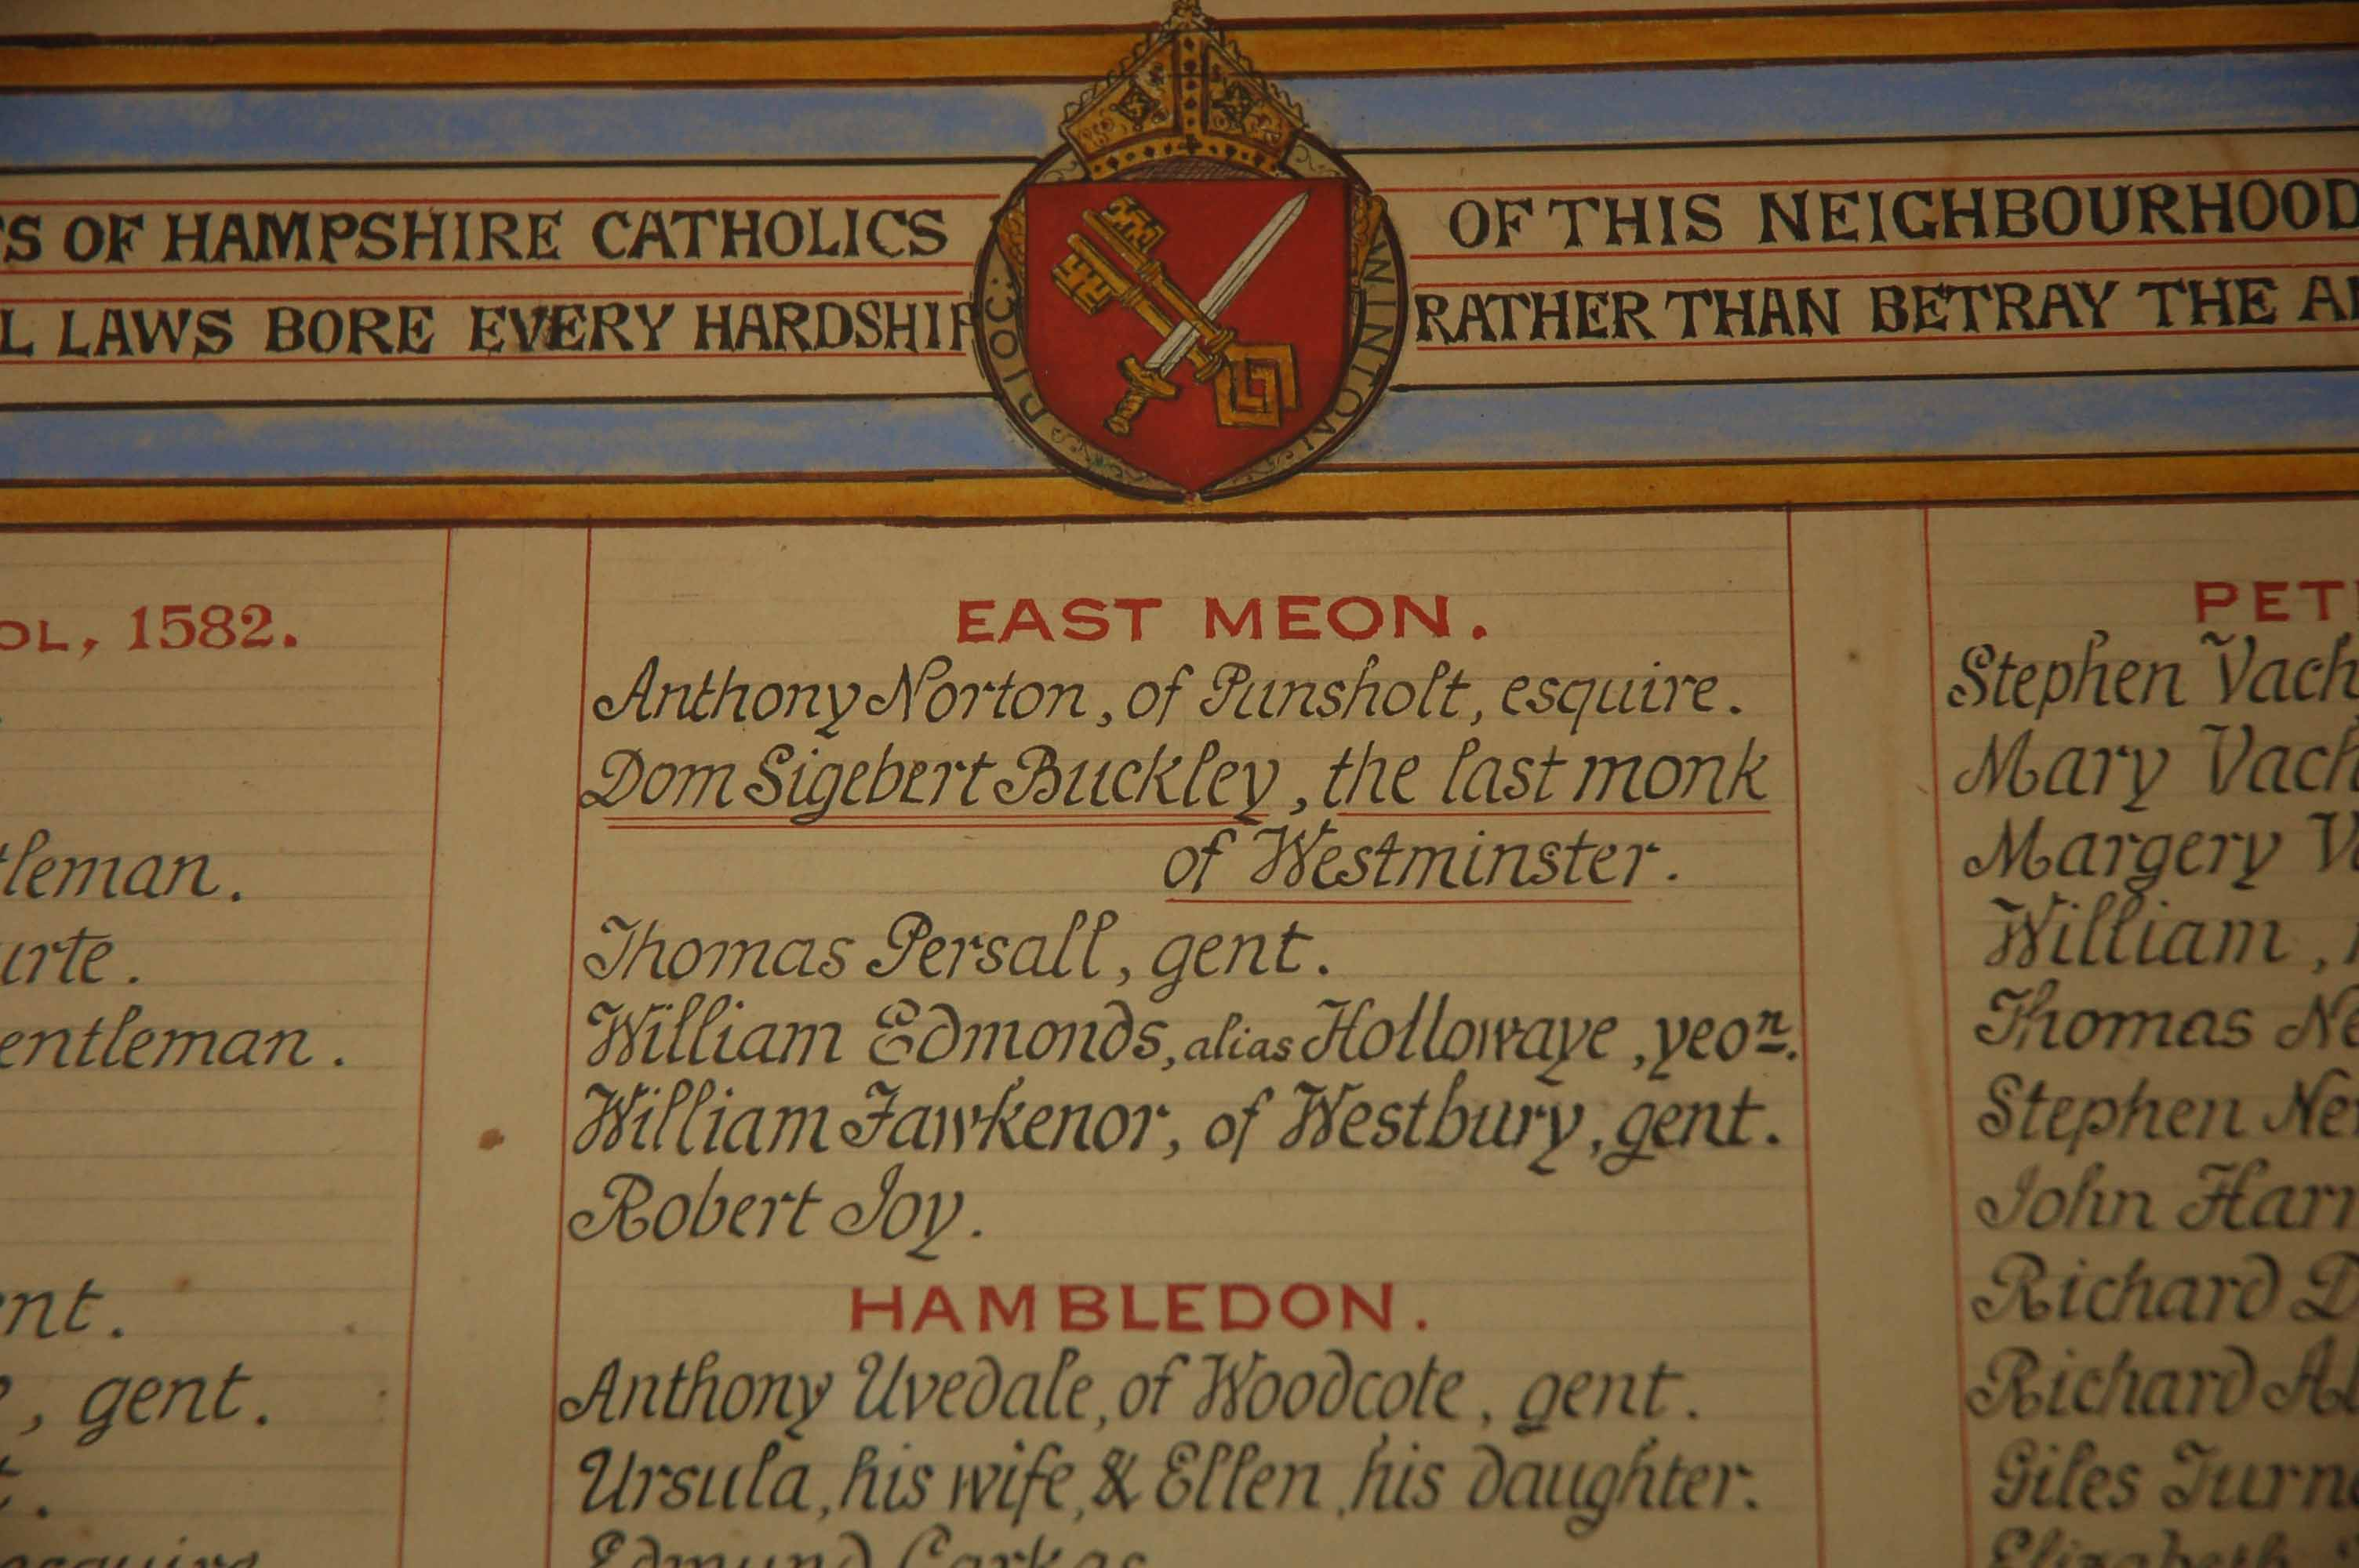 A plaque in St Laurence, Petersfield, commemorating Catholics who had suffered for